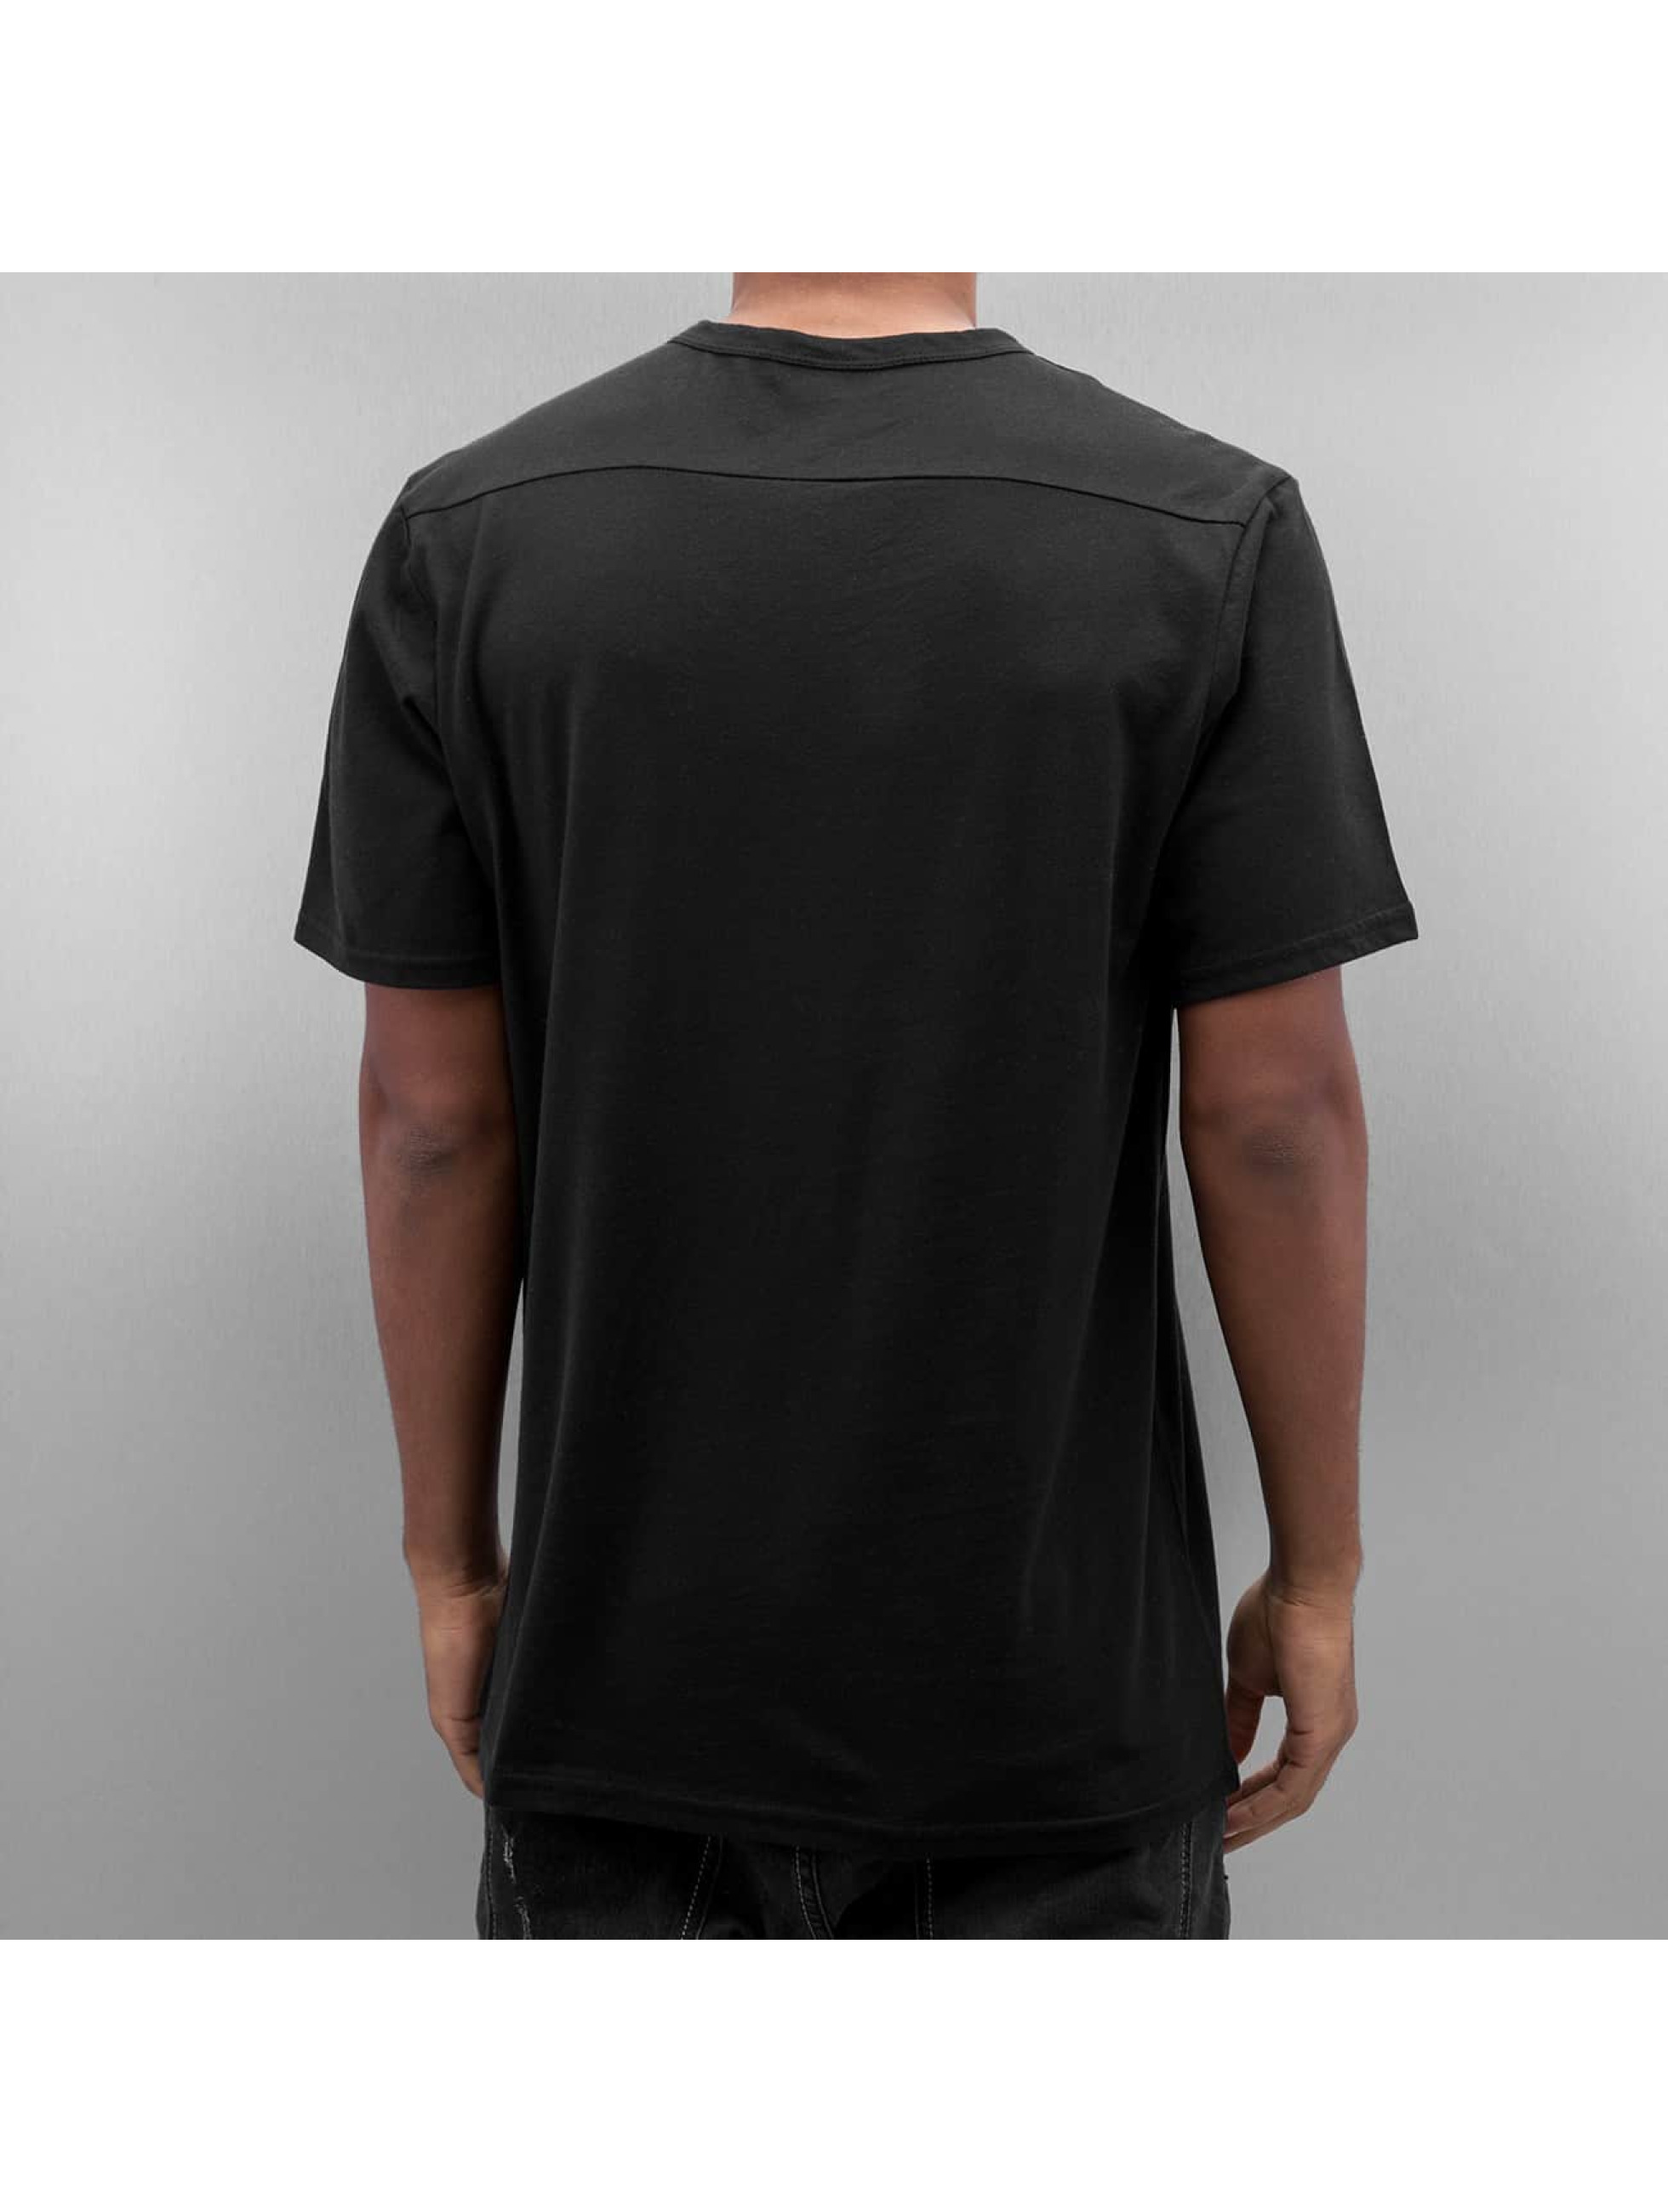 Electric T-shirt STIPPLED nero